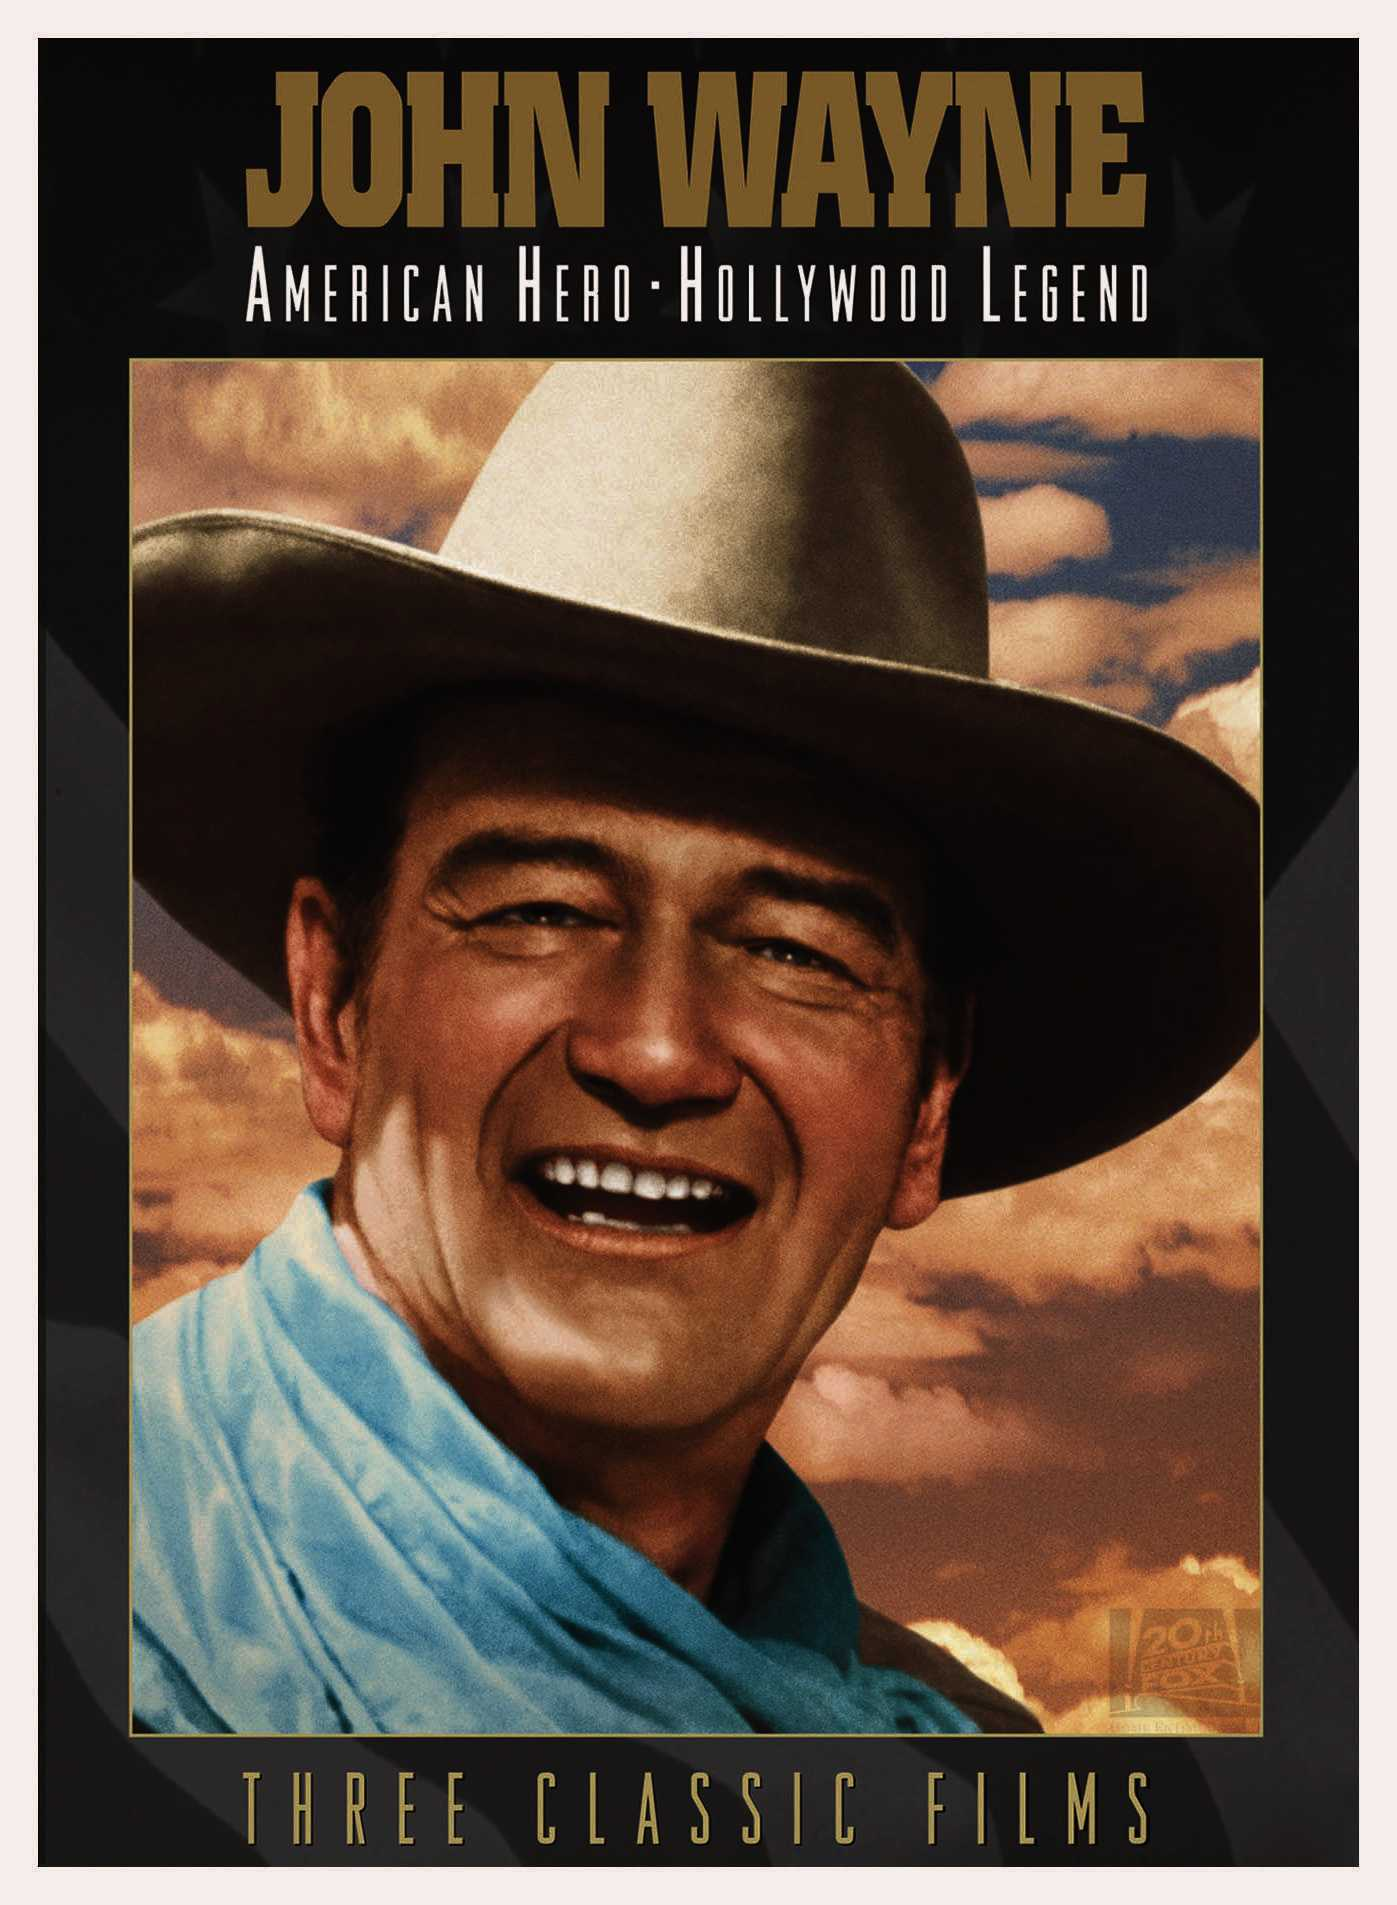 JOHN WAYNE COLLECTION BY WAYNE,JOHN (DVD)